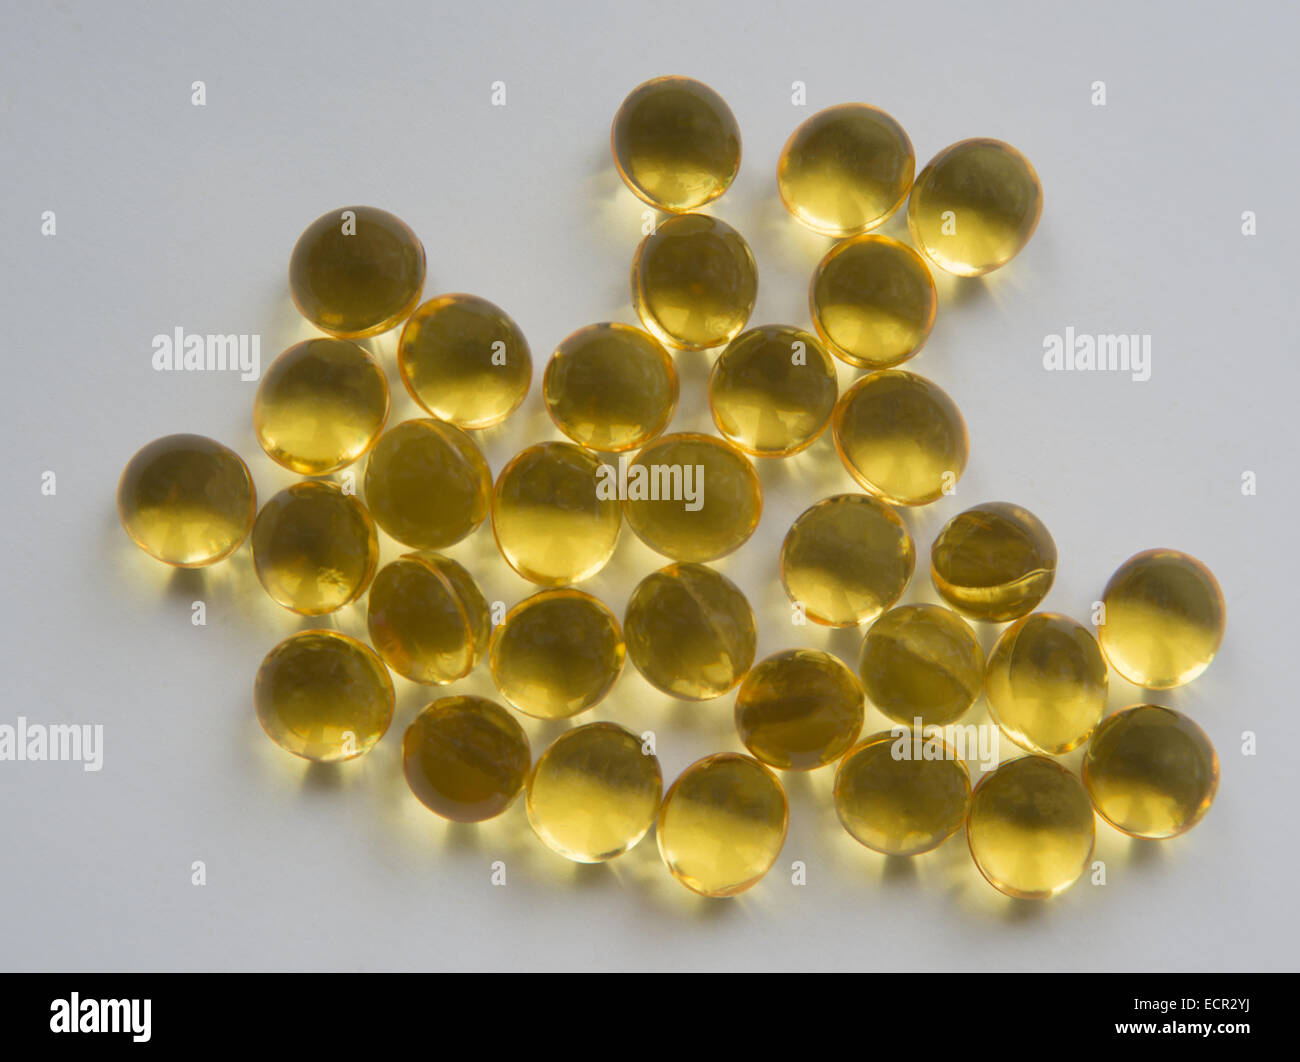 Many transparent yellow pills (capsule) are situated on the white background. - Stock Image